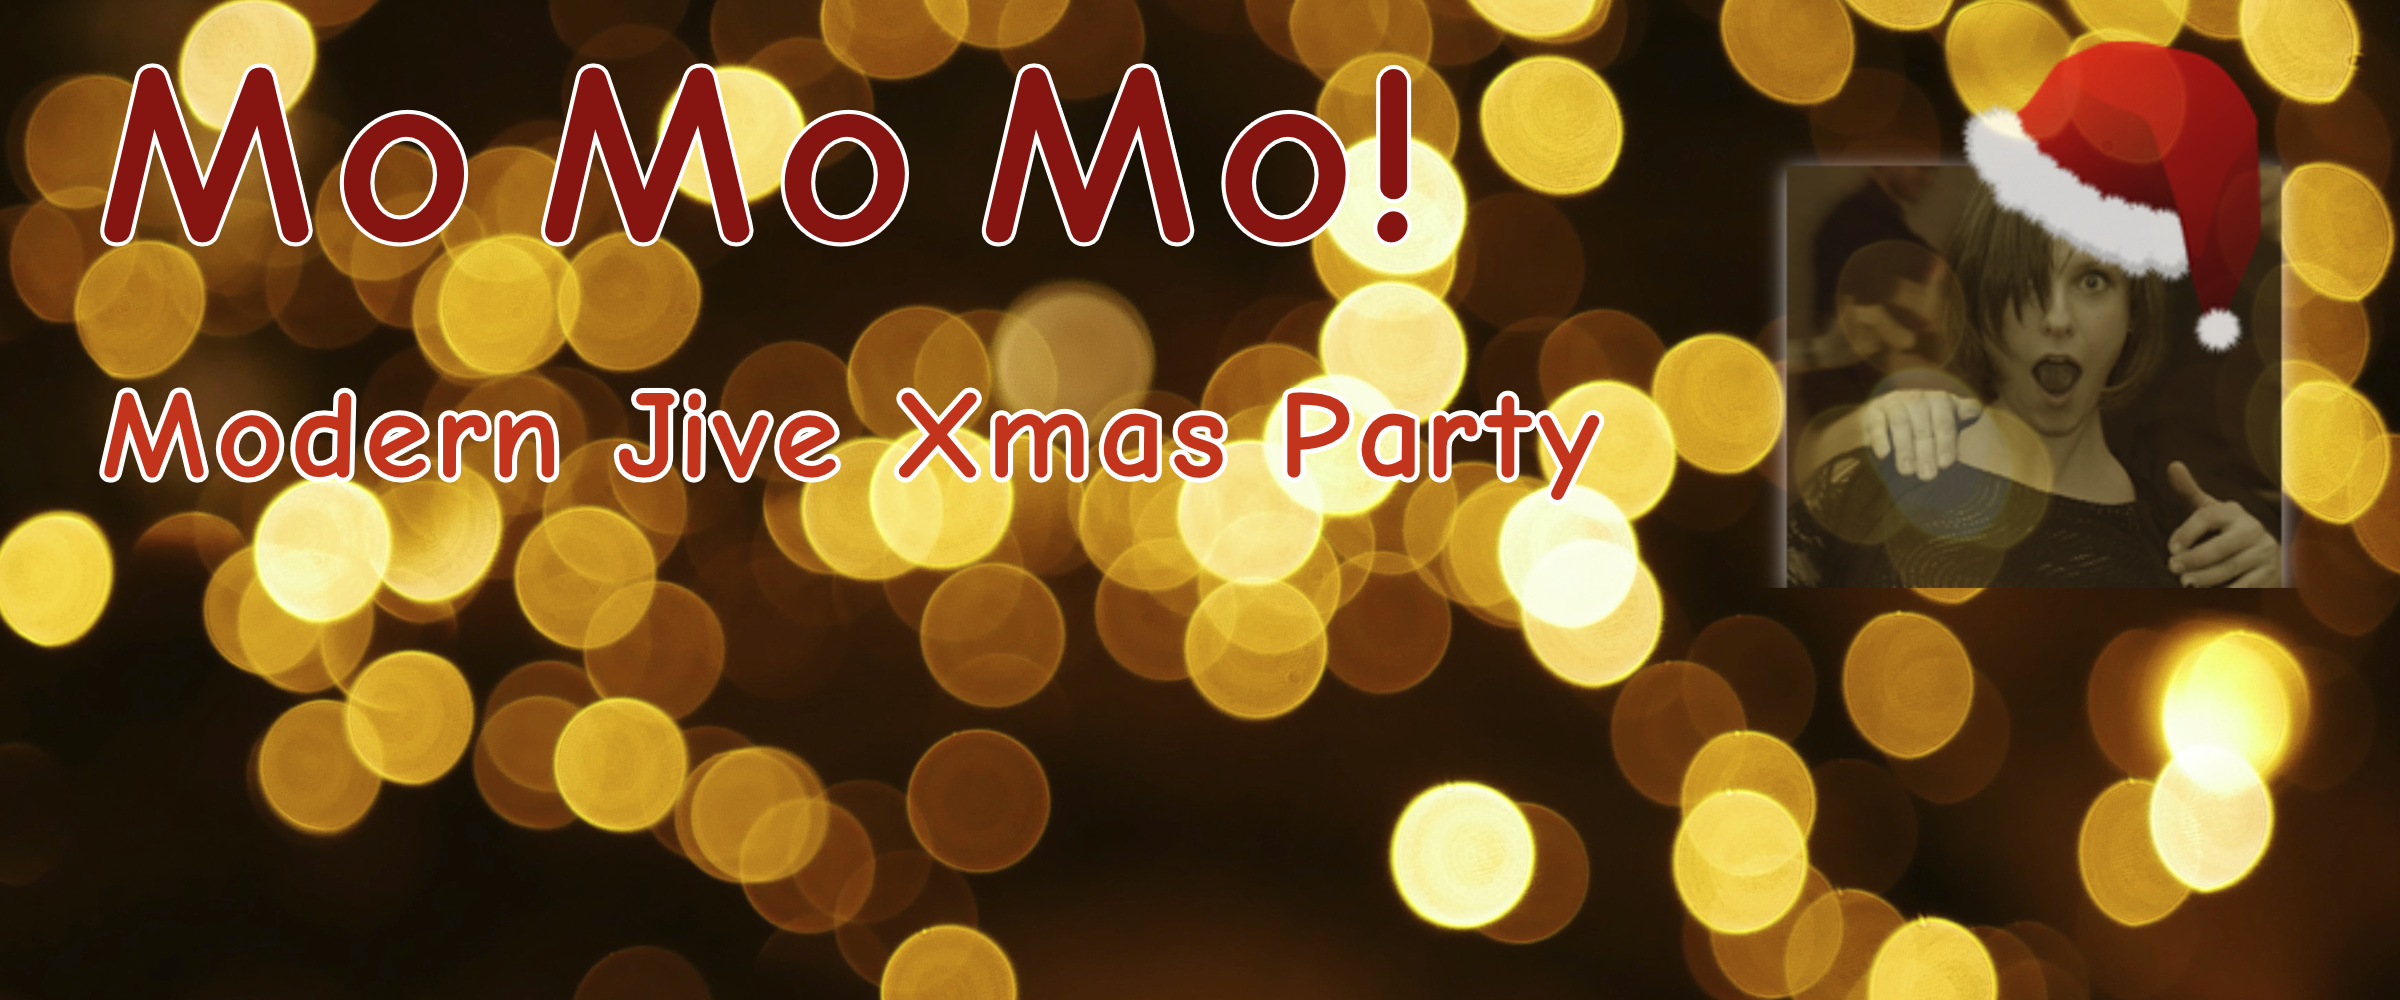 Modern Jive Xmas-Party: 07.12. ab 21:00 Uhr